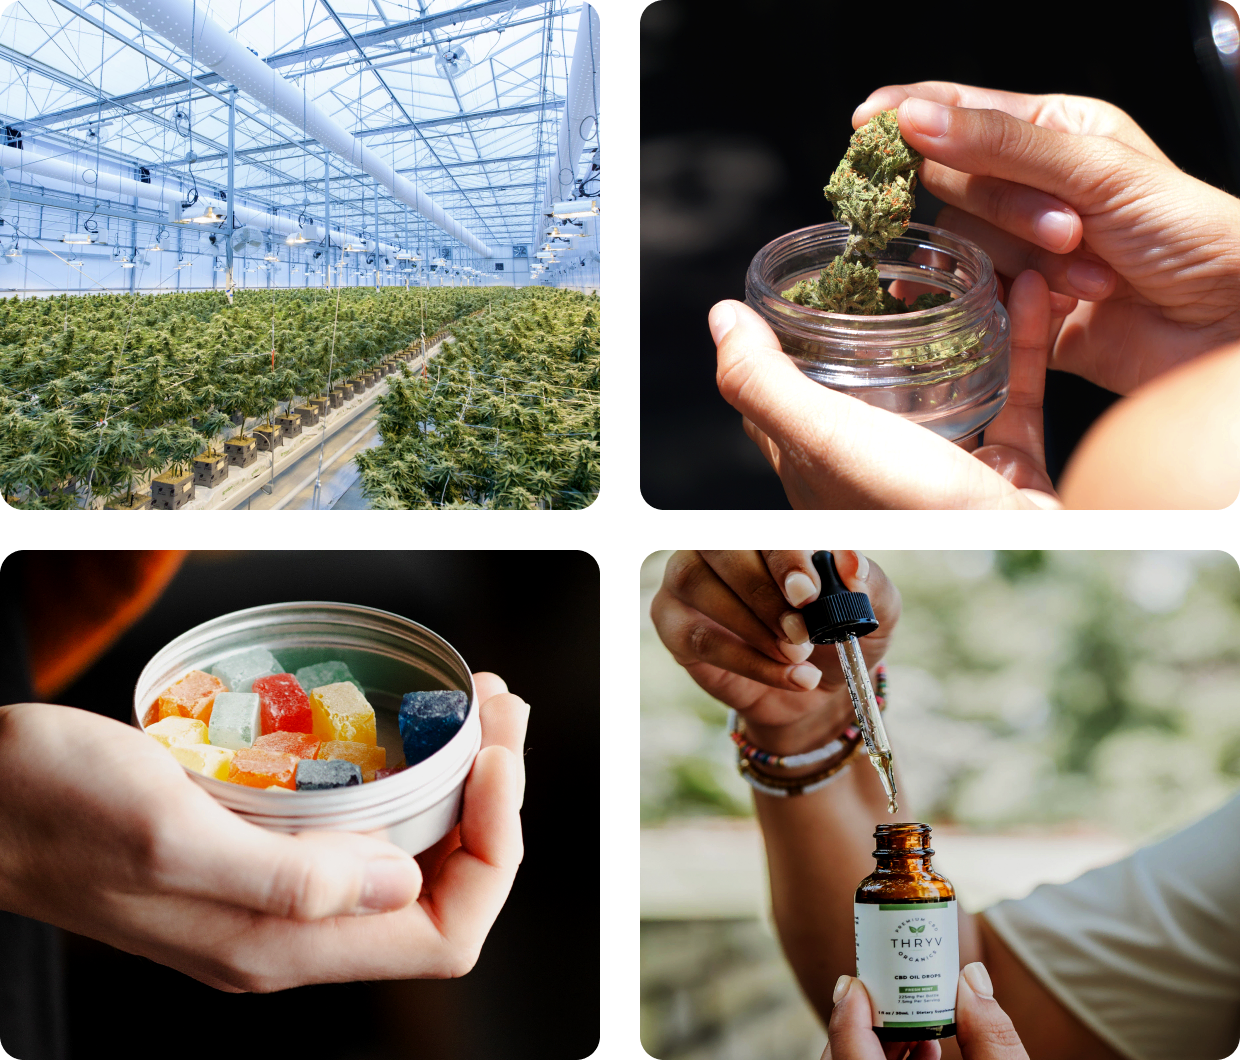 Products of the cannabis industry